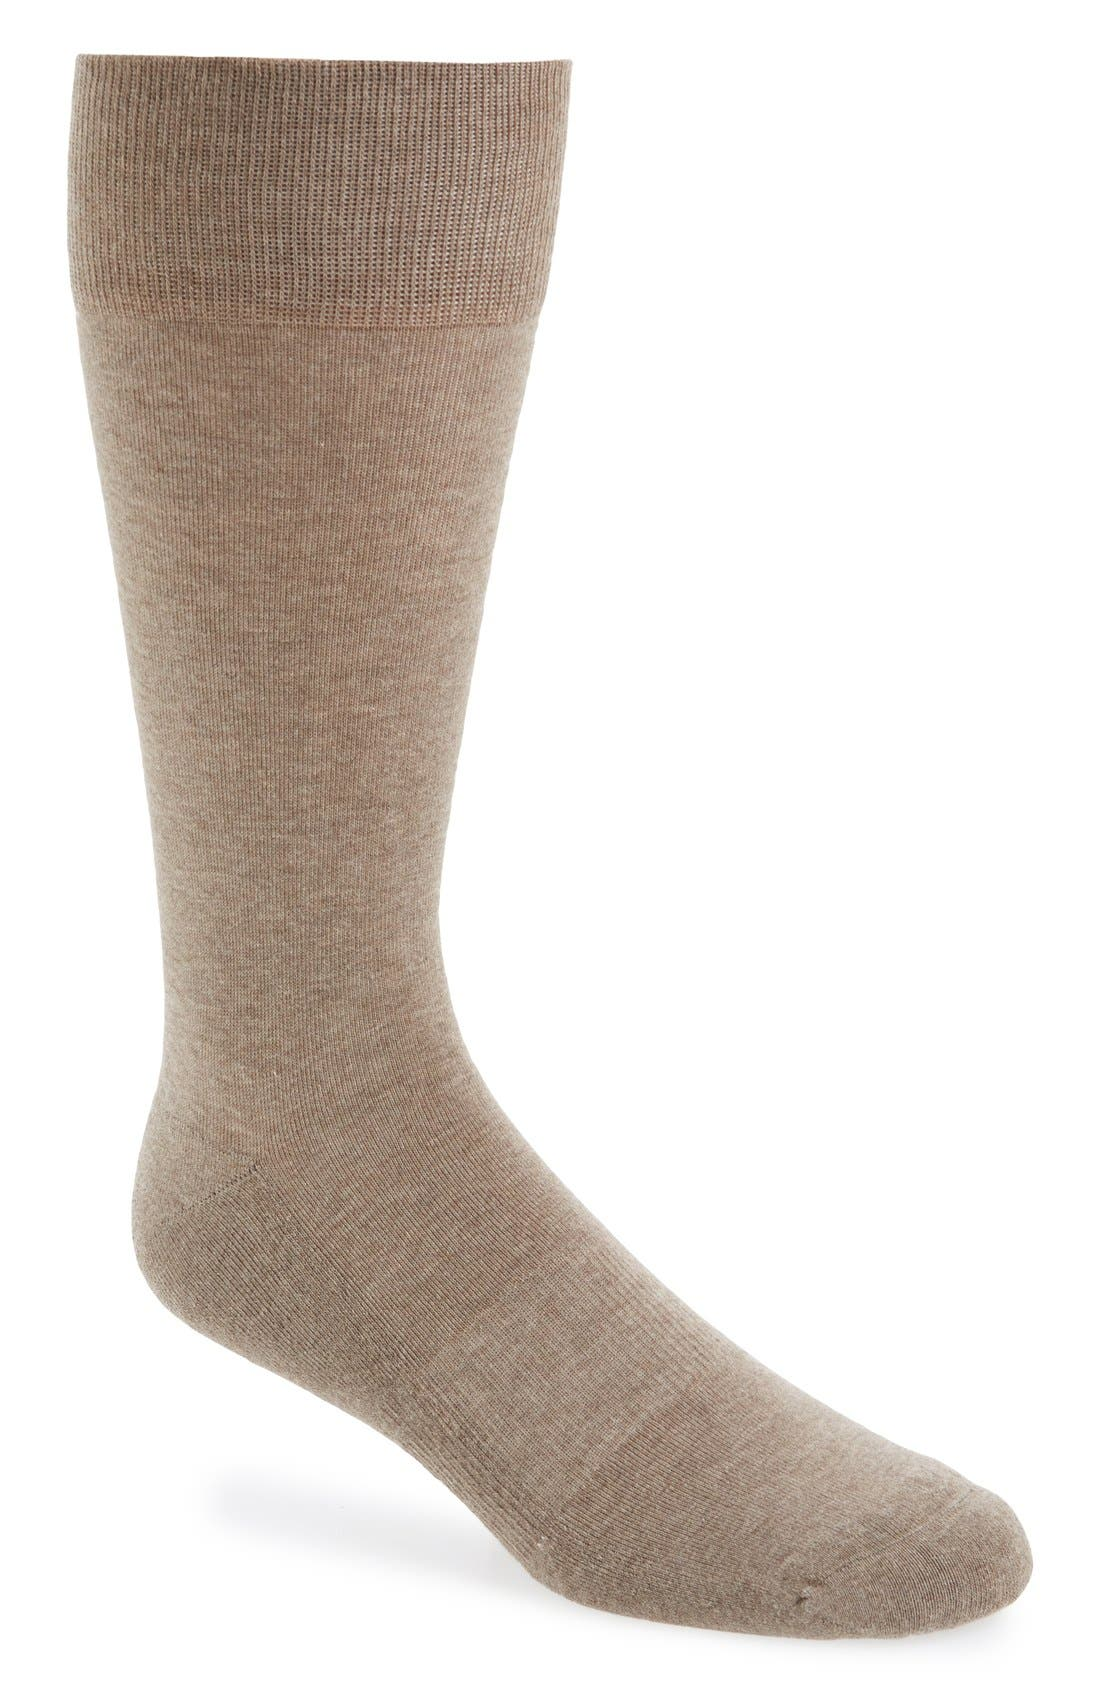 Nordstrom Men's Shop Cushion Foot Arch Support Socks (3 for $30)